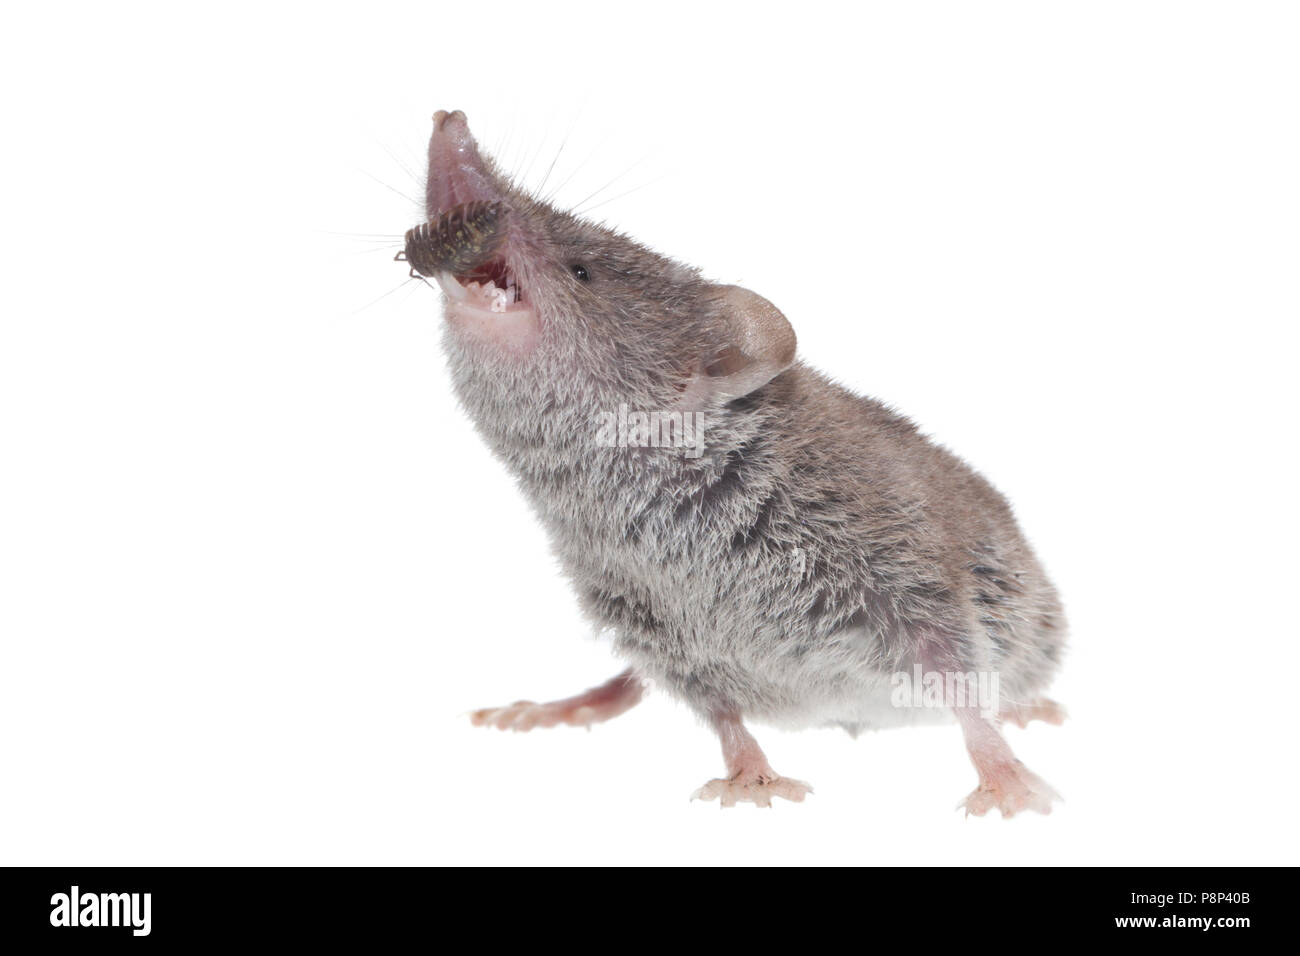 greater white-toothed shrew isolated against a white background - Stock Image